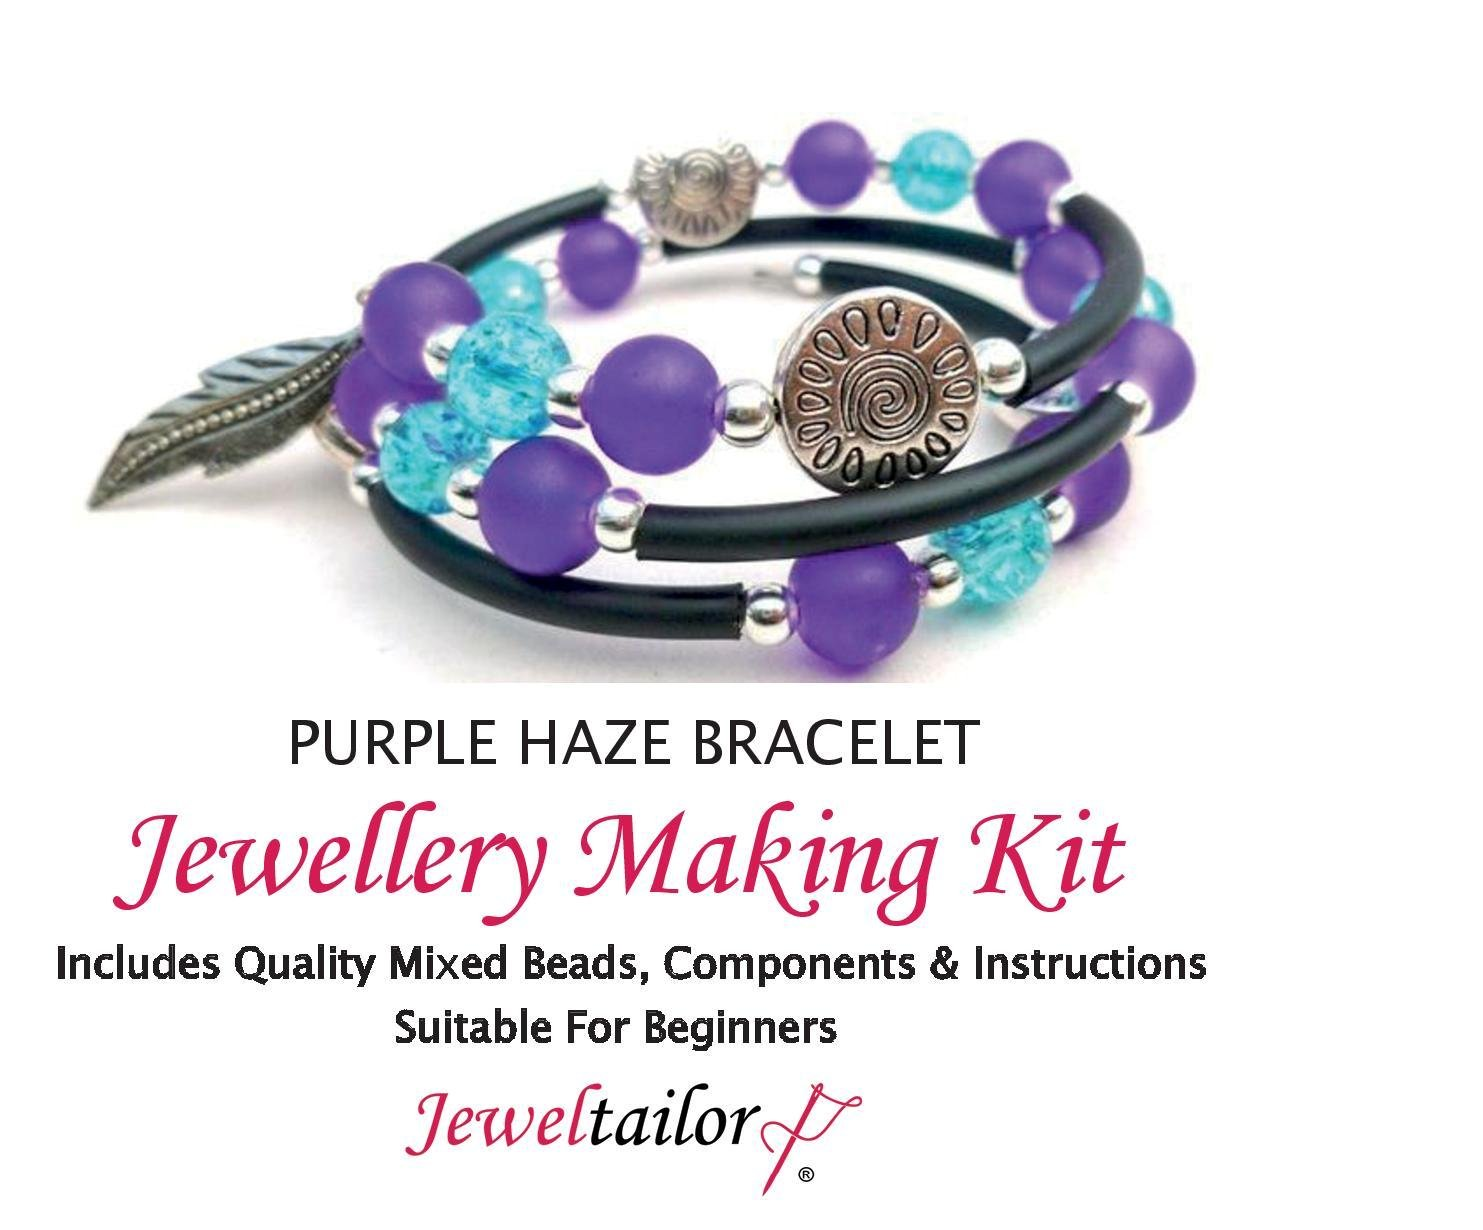 Leaf Charms Bonus Beads Instructions JEWELTAILOR Purple Haze Bracelet Jewellery Making Kit ~Includes Memory Wire For Up To 10 Bracelets FREE Luxury Gift Bag Mixed Glass Beads